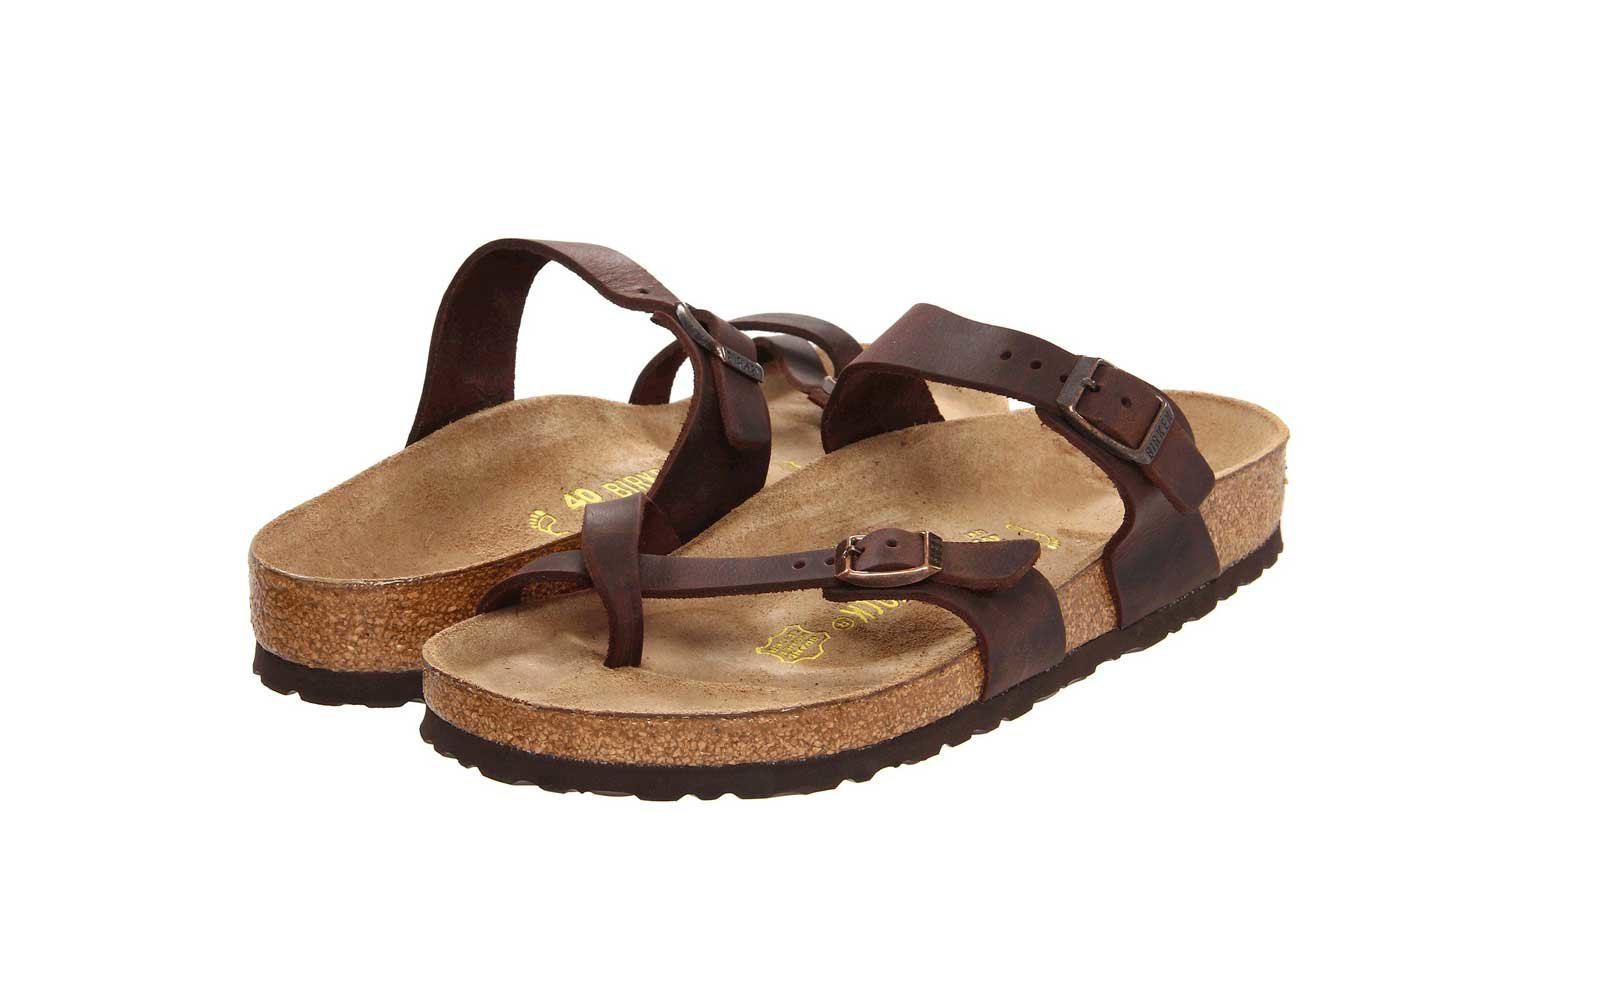 f3f0999c186b The Most Comfortable Walking Sandals for Women